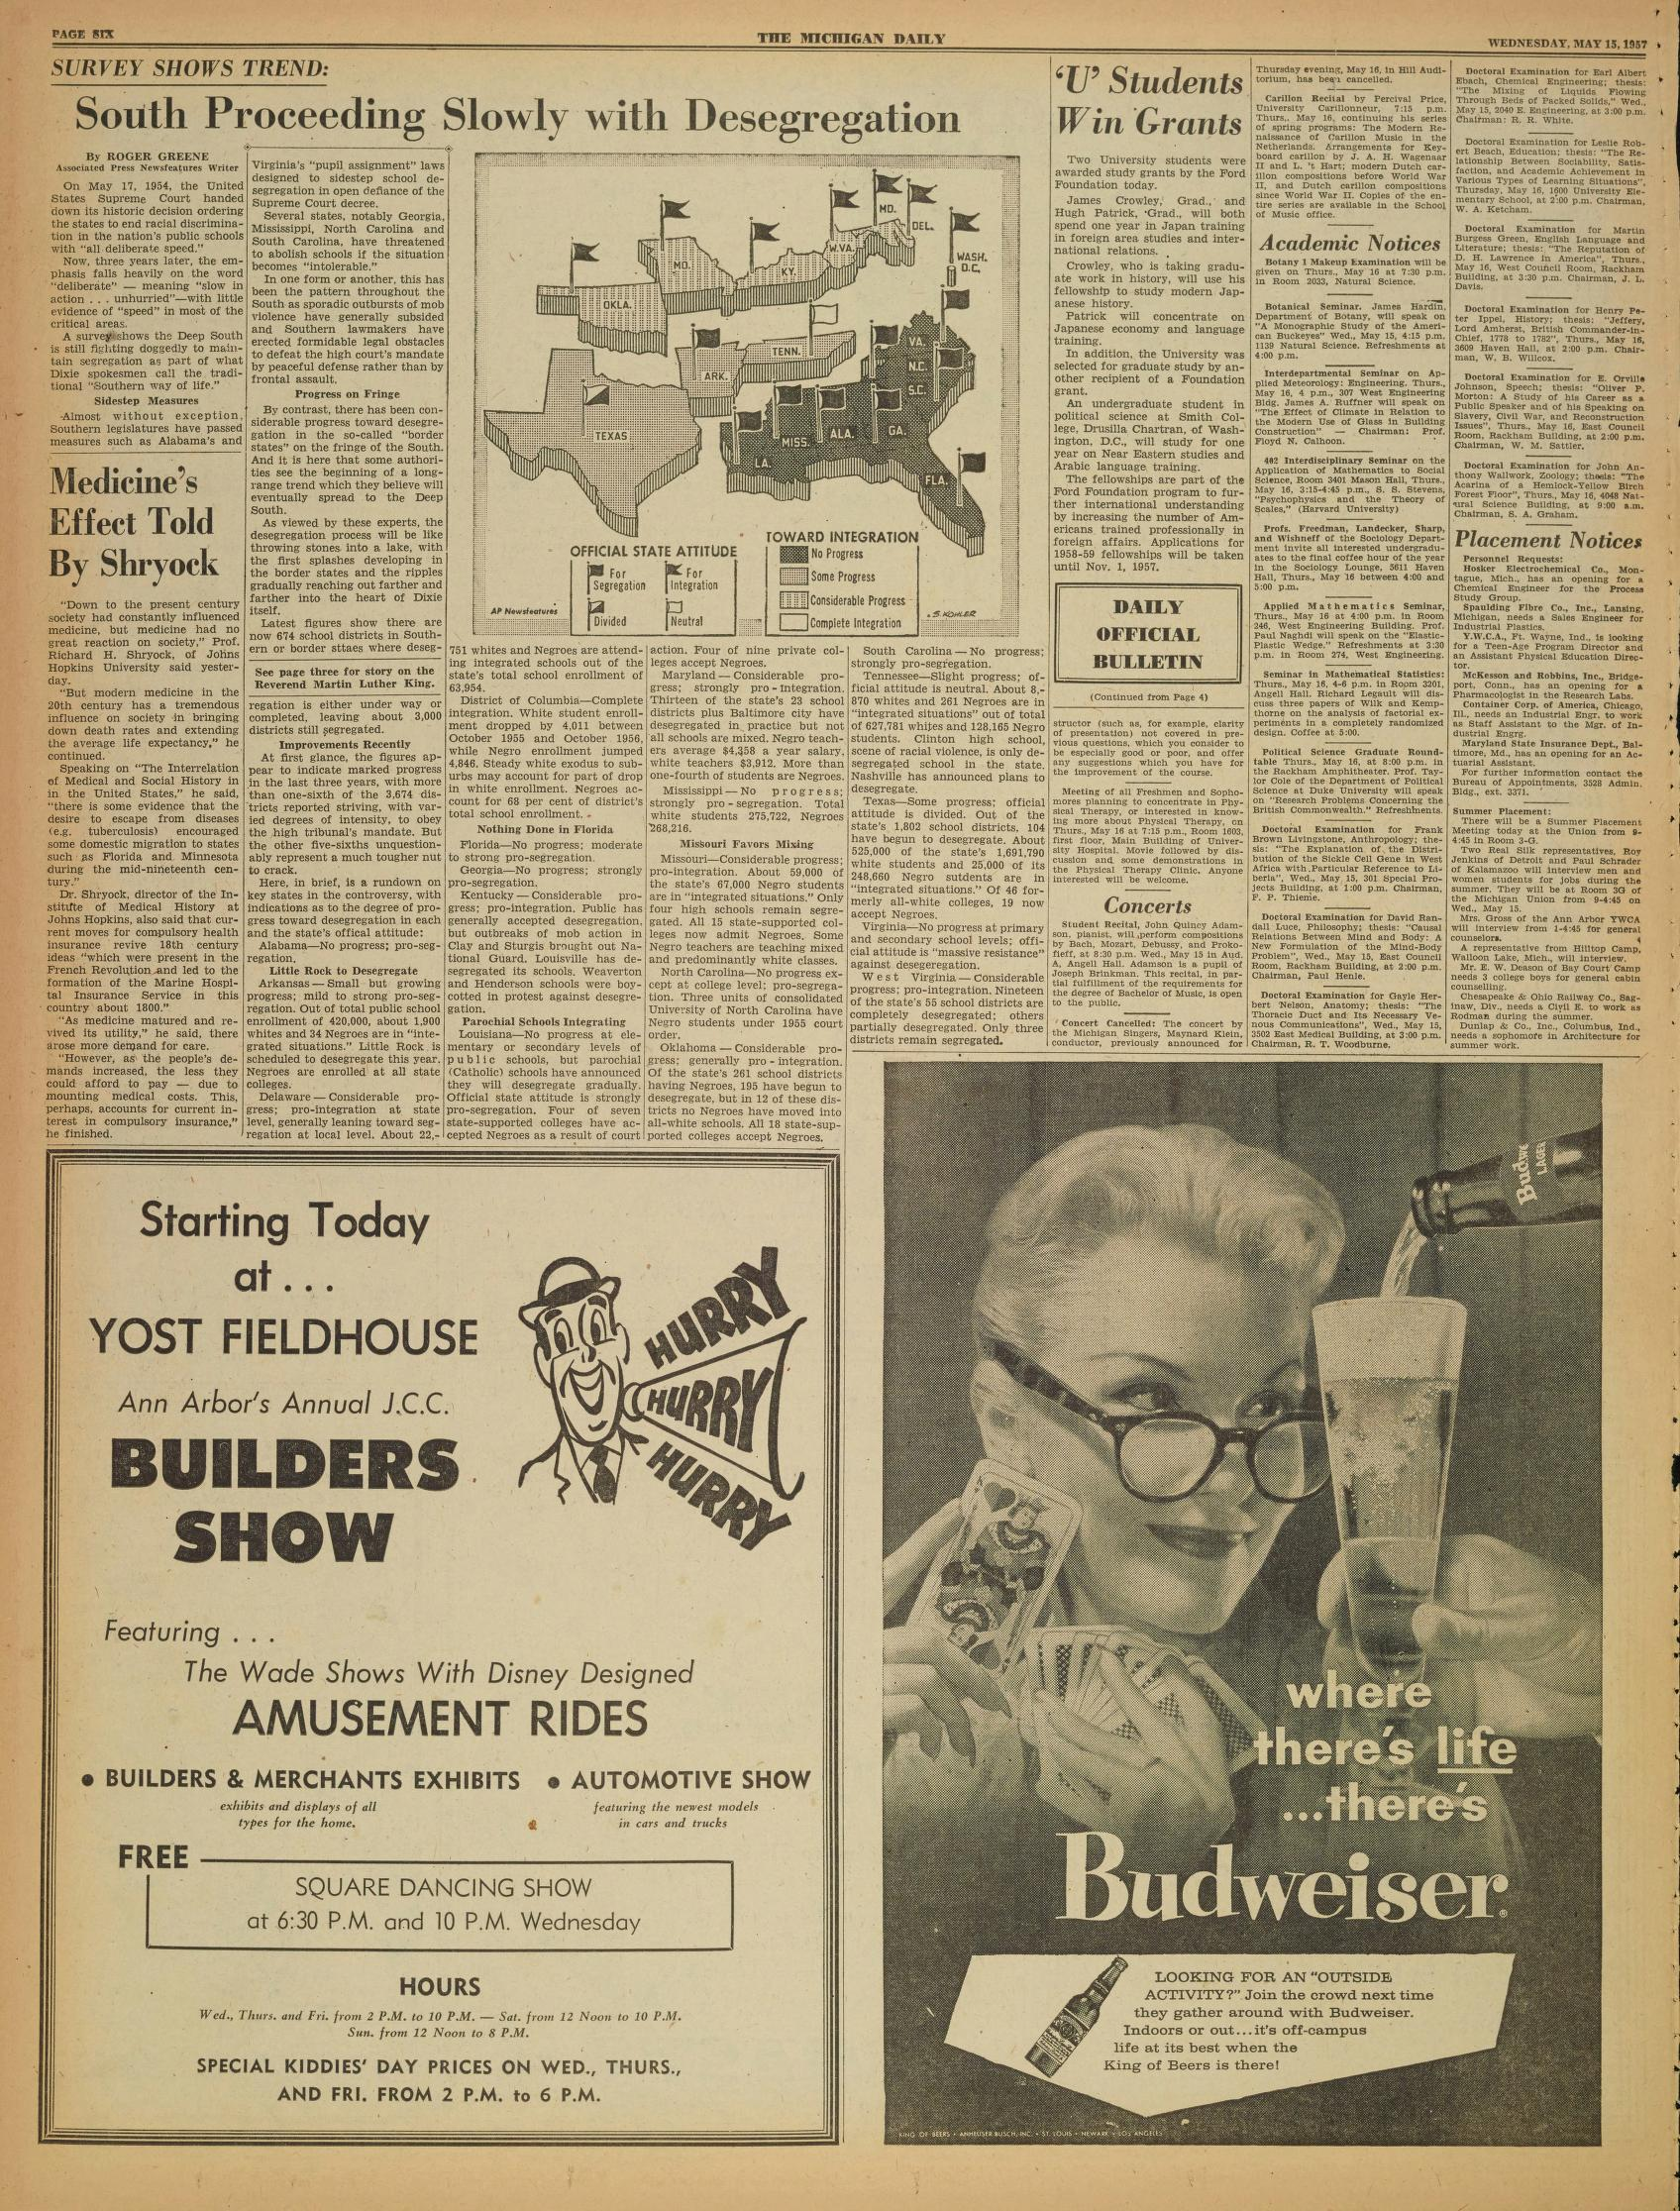 Michigan Daily Digital Archives - May 15, 1957 (vol  67, iss